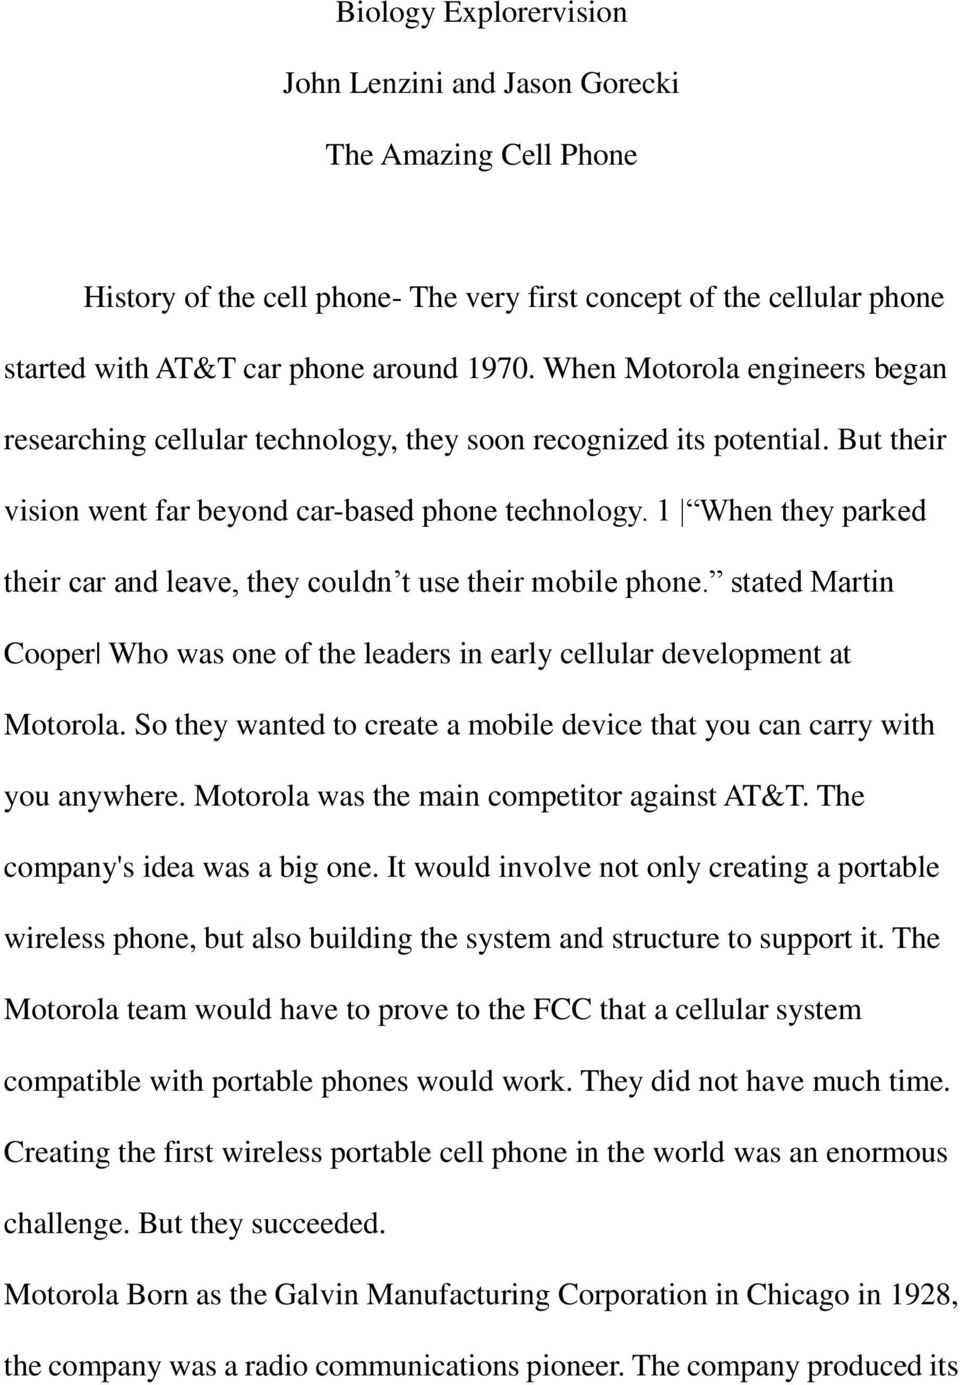 1 When they parked their car and leave, they couldn t use their mobile phone. stated Martin Cooper Who was one of the leaders in early cellular development at Motorola.